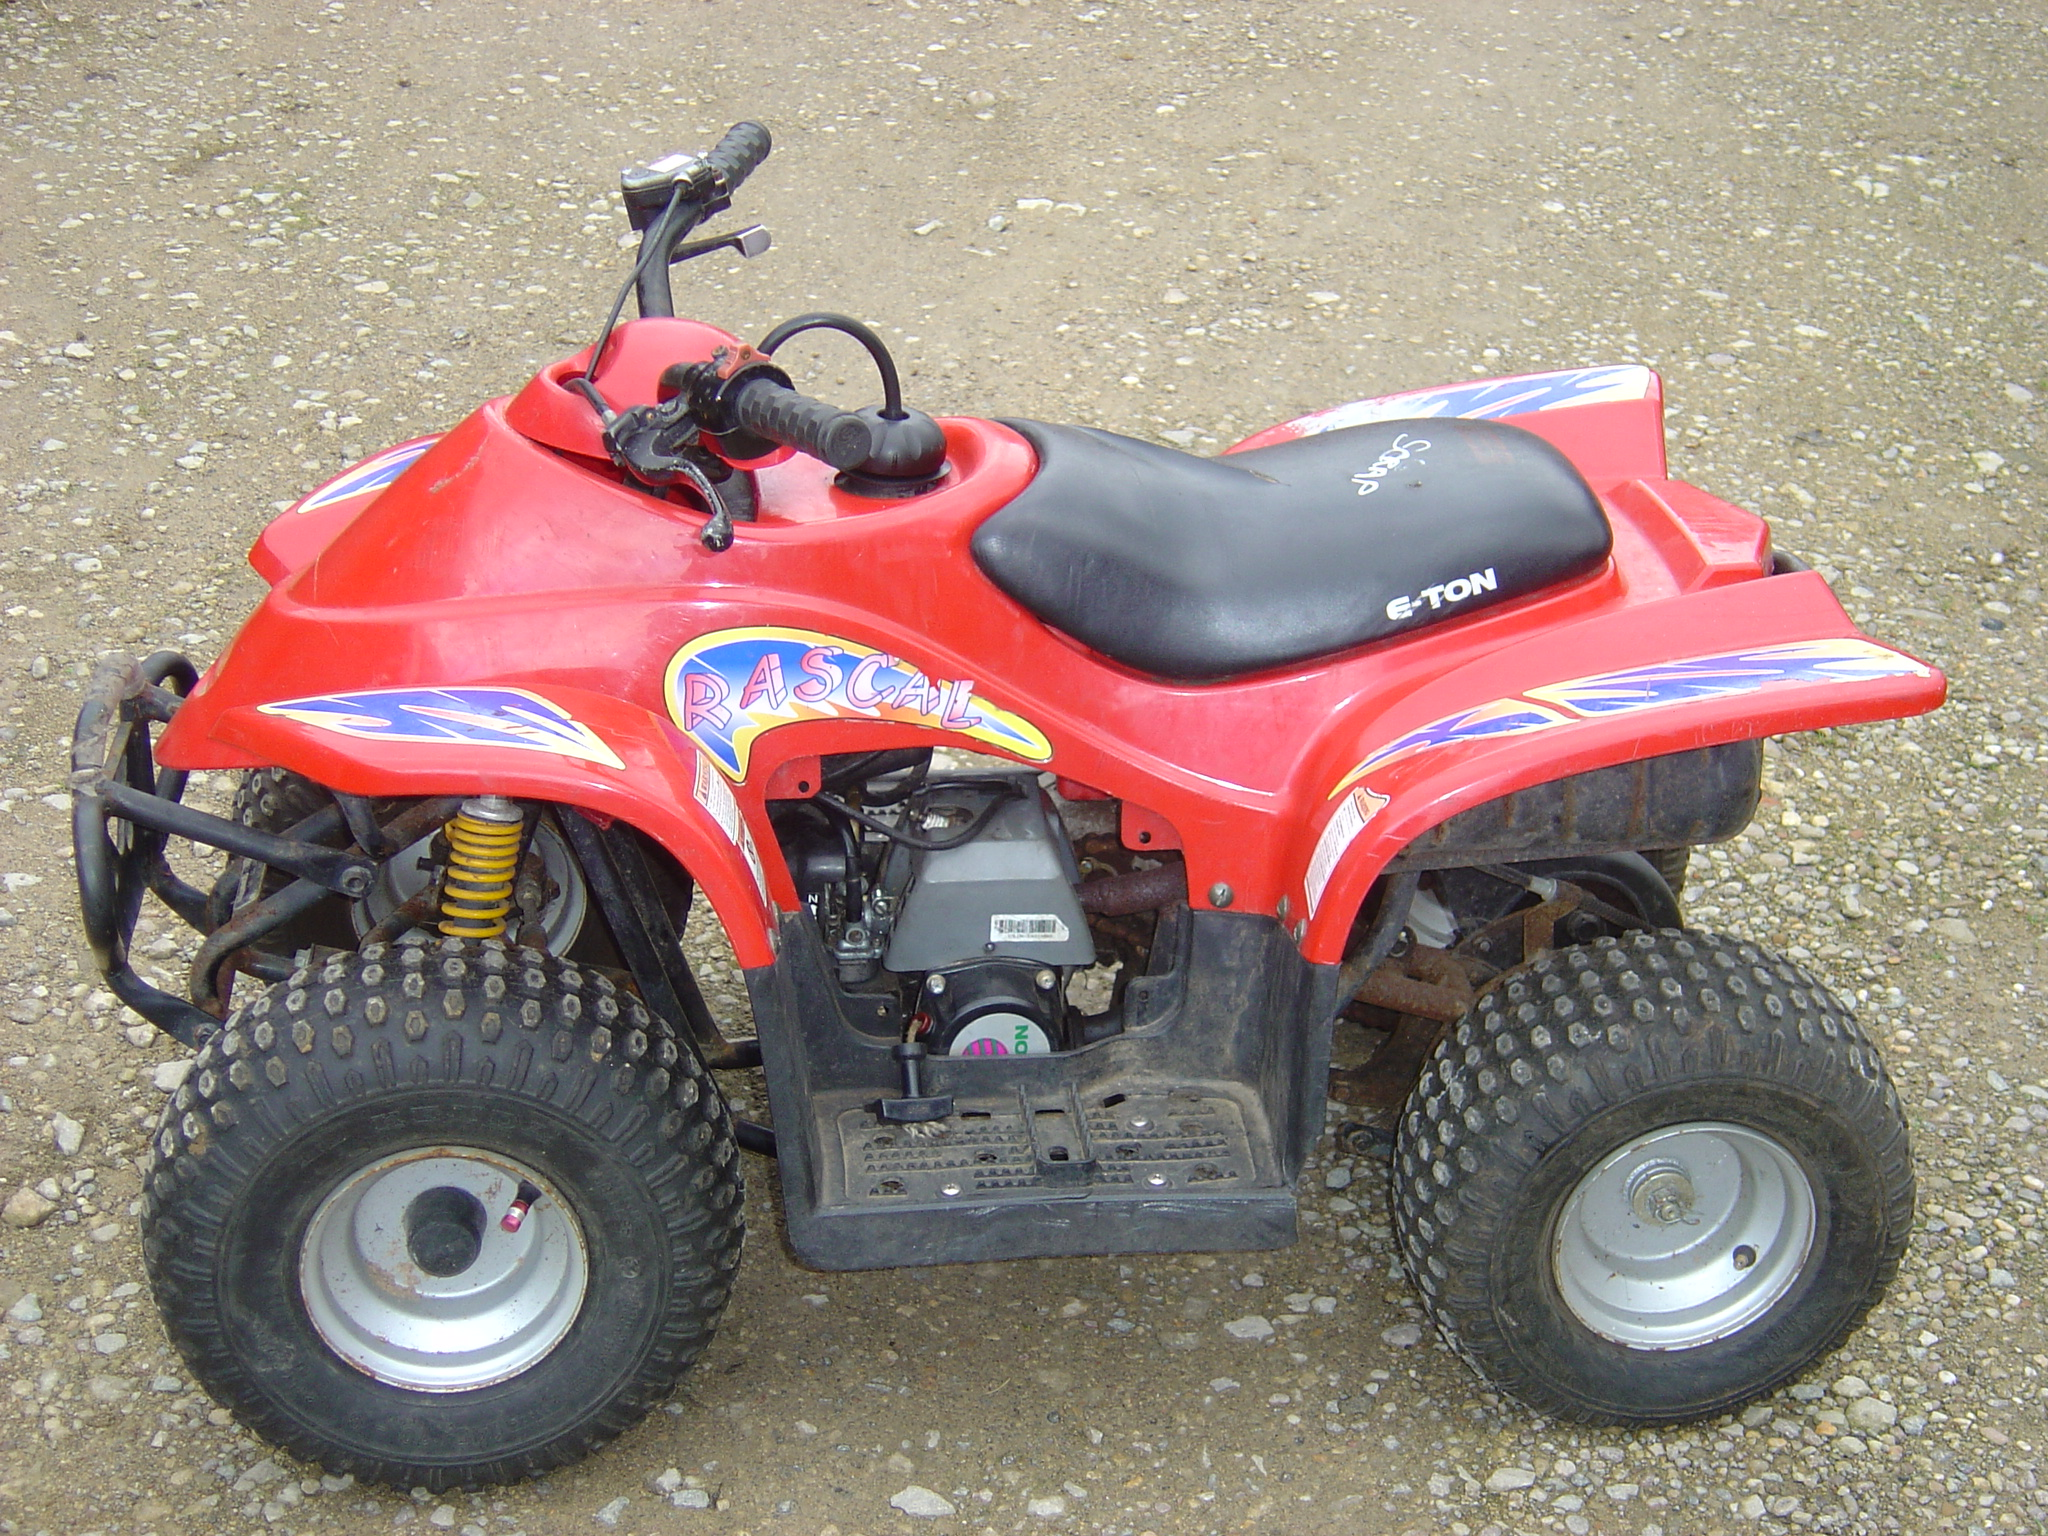 eton atv wiring diagram general wiring diagram information u2022 rh velvetfive co uk honda big red quad wiring diagram honda 500 quad wiring diagram